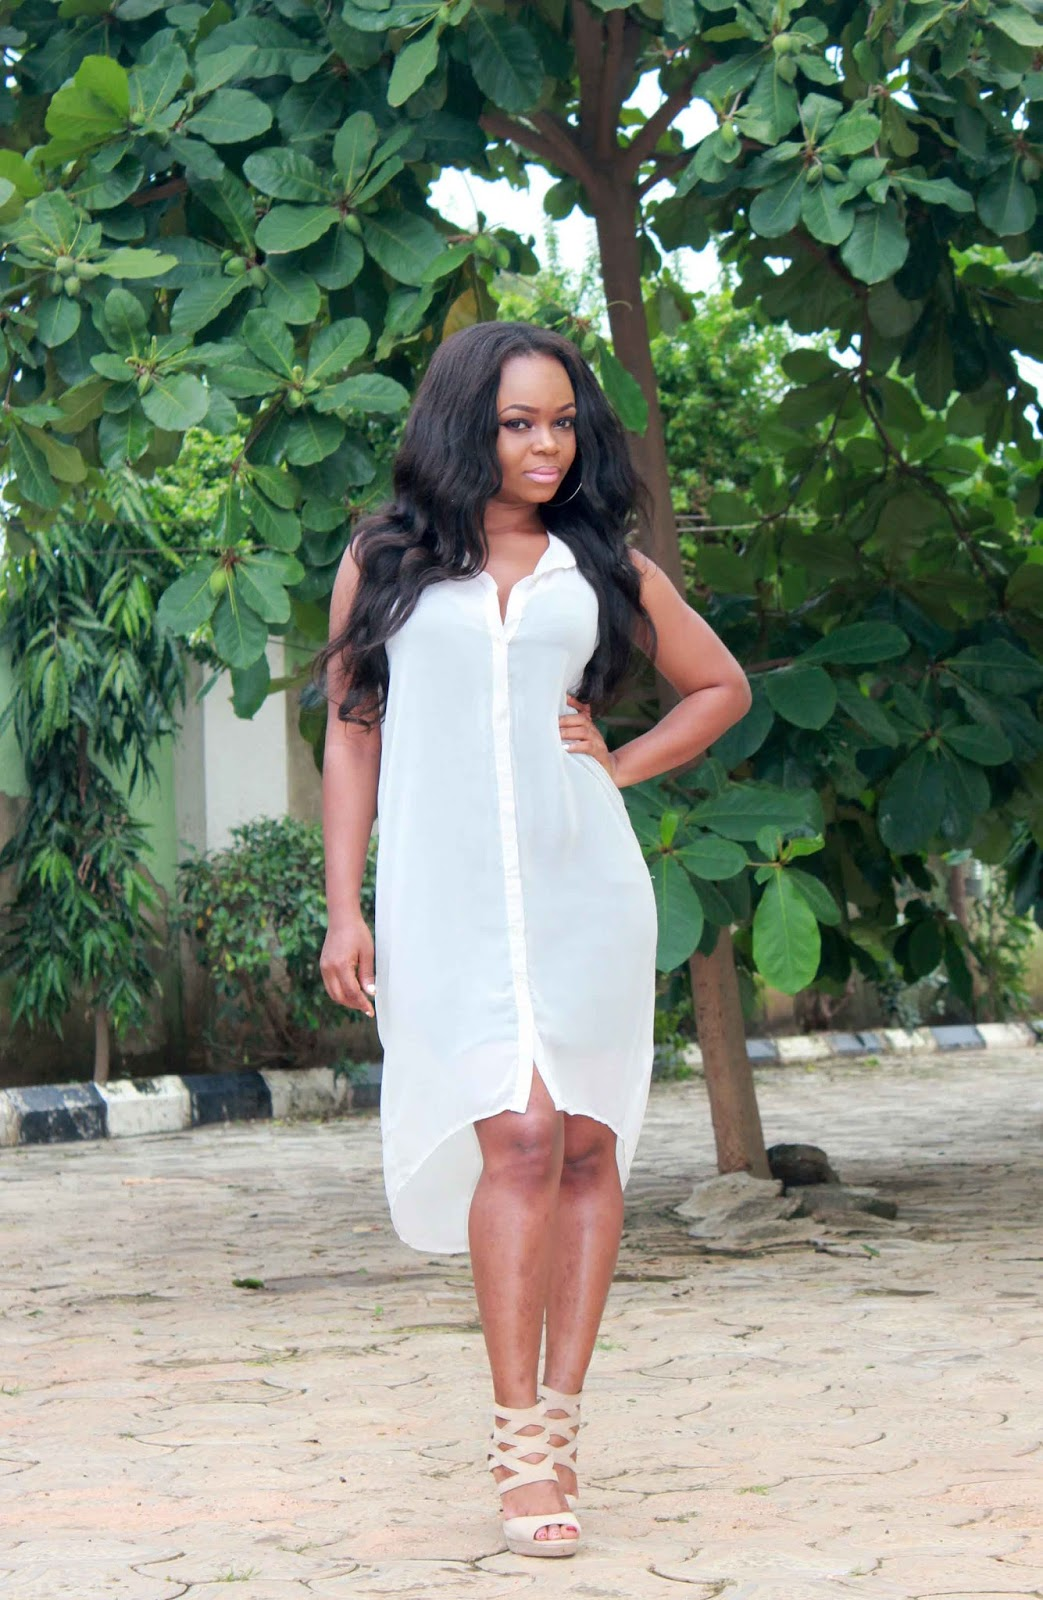 cream colored shirt dress with strappy sandals from Jumia